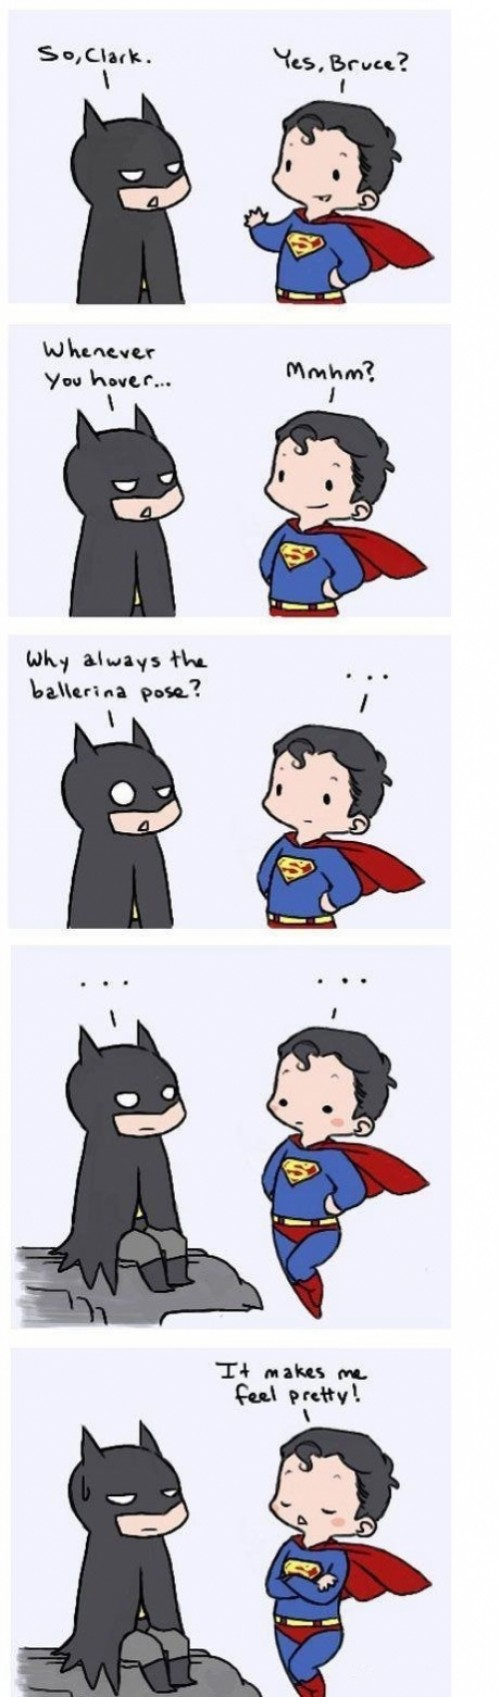 Google Image Result for http://4.cdn.tapcdn.com/images/thumbs/taps/2012/07/whenever-you-hover-yes-bruce-ballerina-pose-brucem-clark-superman-batman-cafa1428-sz500x1697-animate.jpg